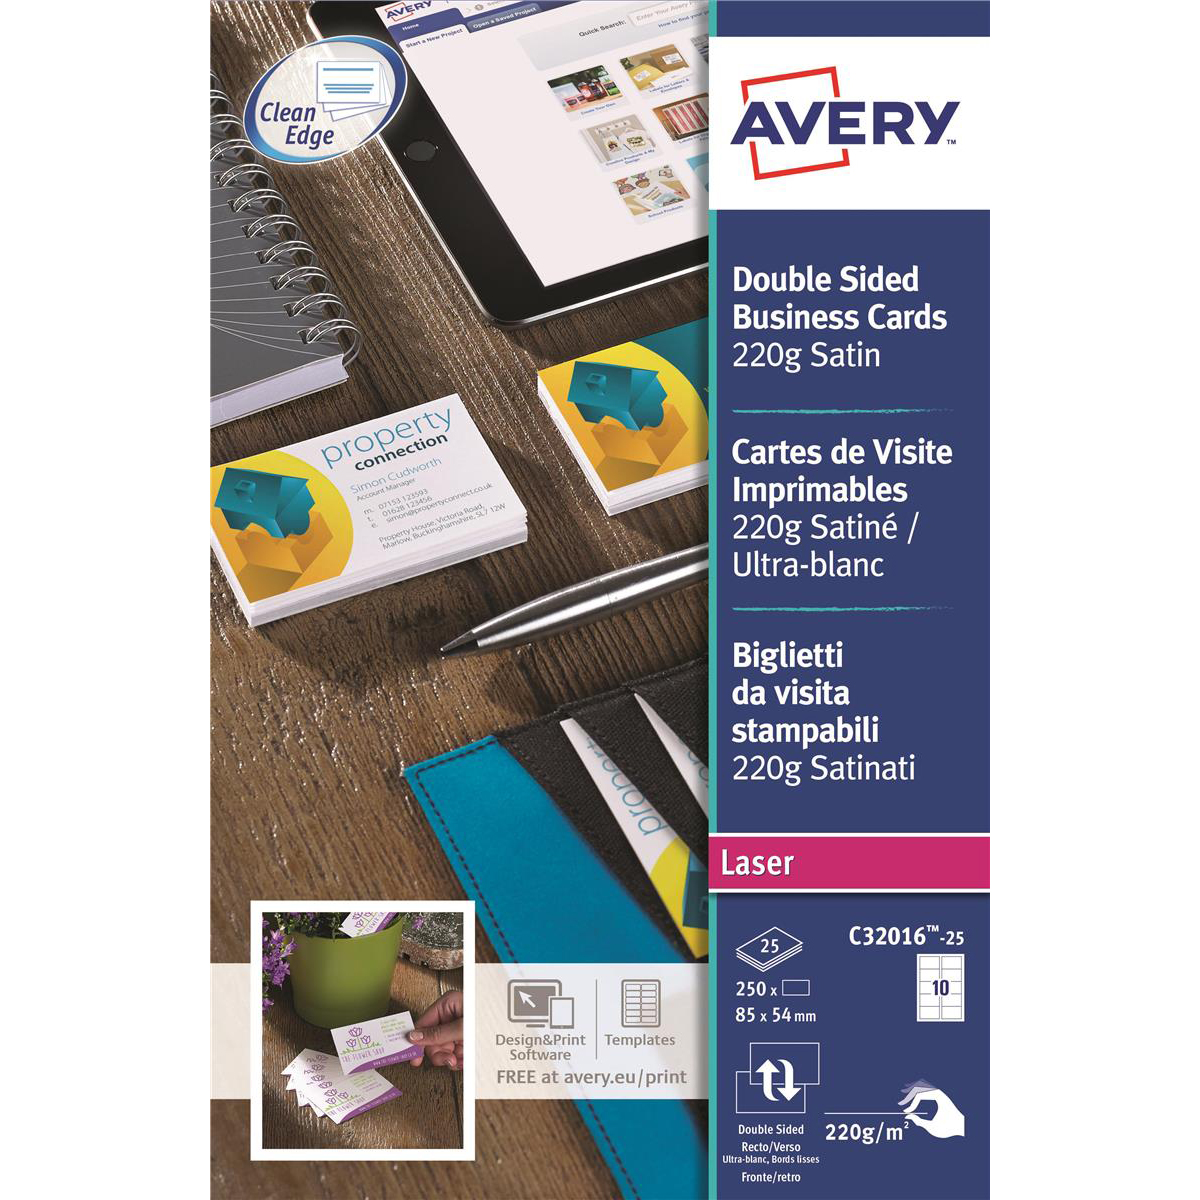 Avery quick and clean business cards laser 220gsm 10 per sheet satin avery quick and clean business cards laser 220gsm 10 per sheet satin colour ref c32016 25 250 cards reheart